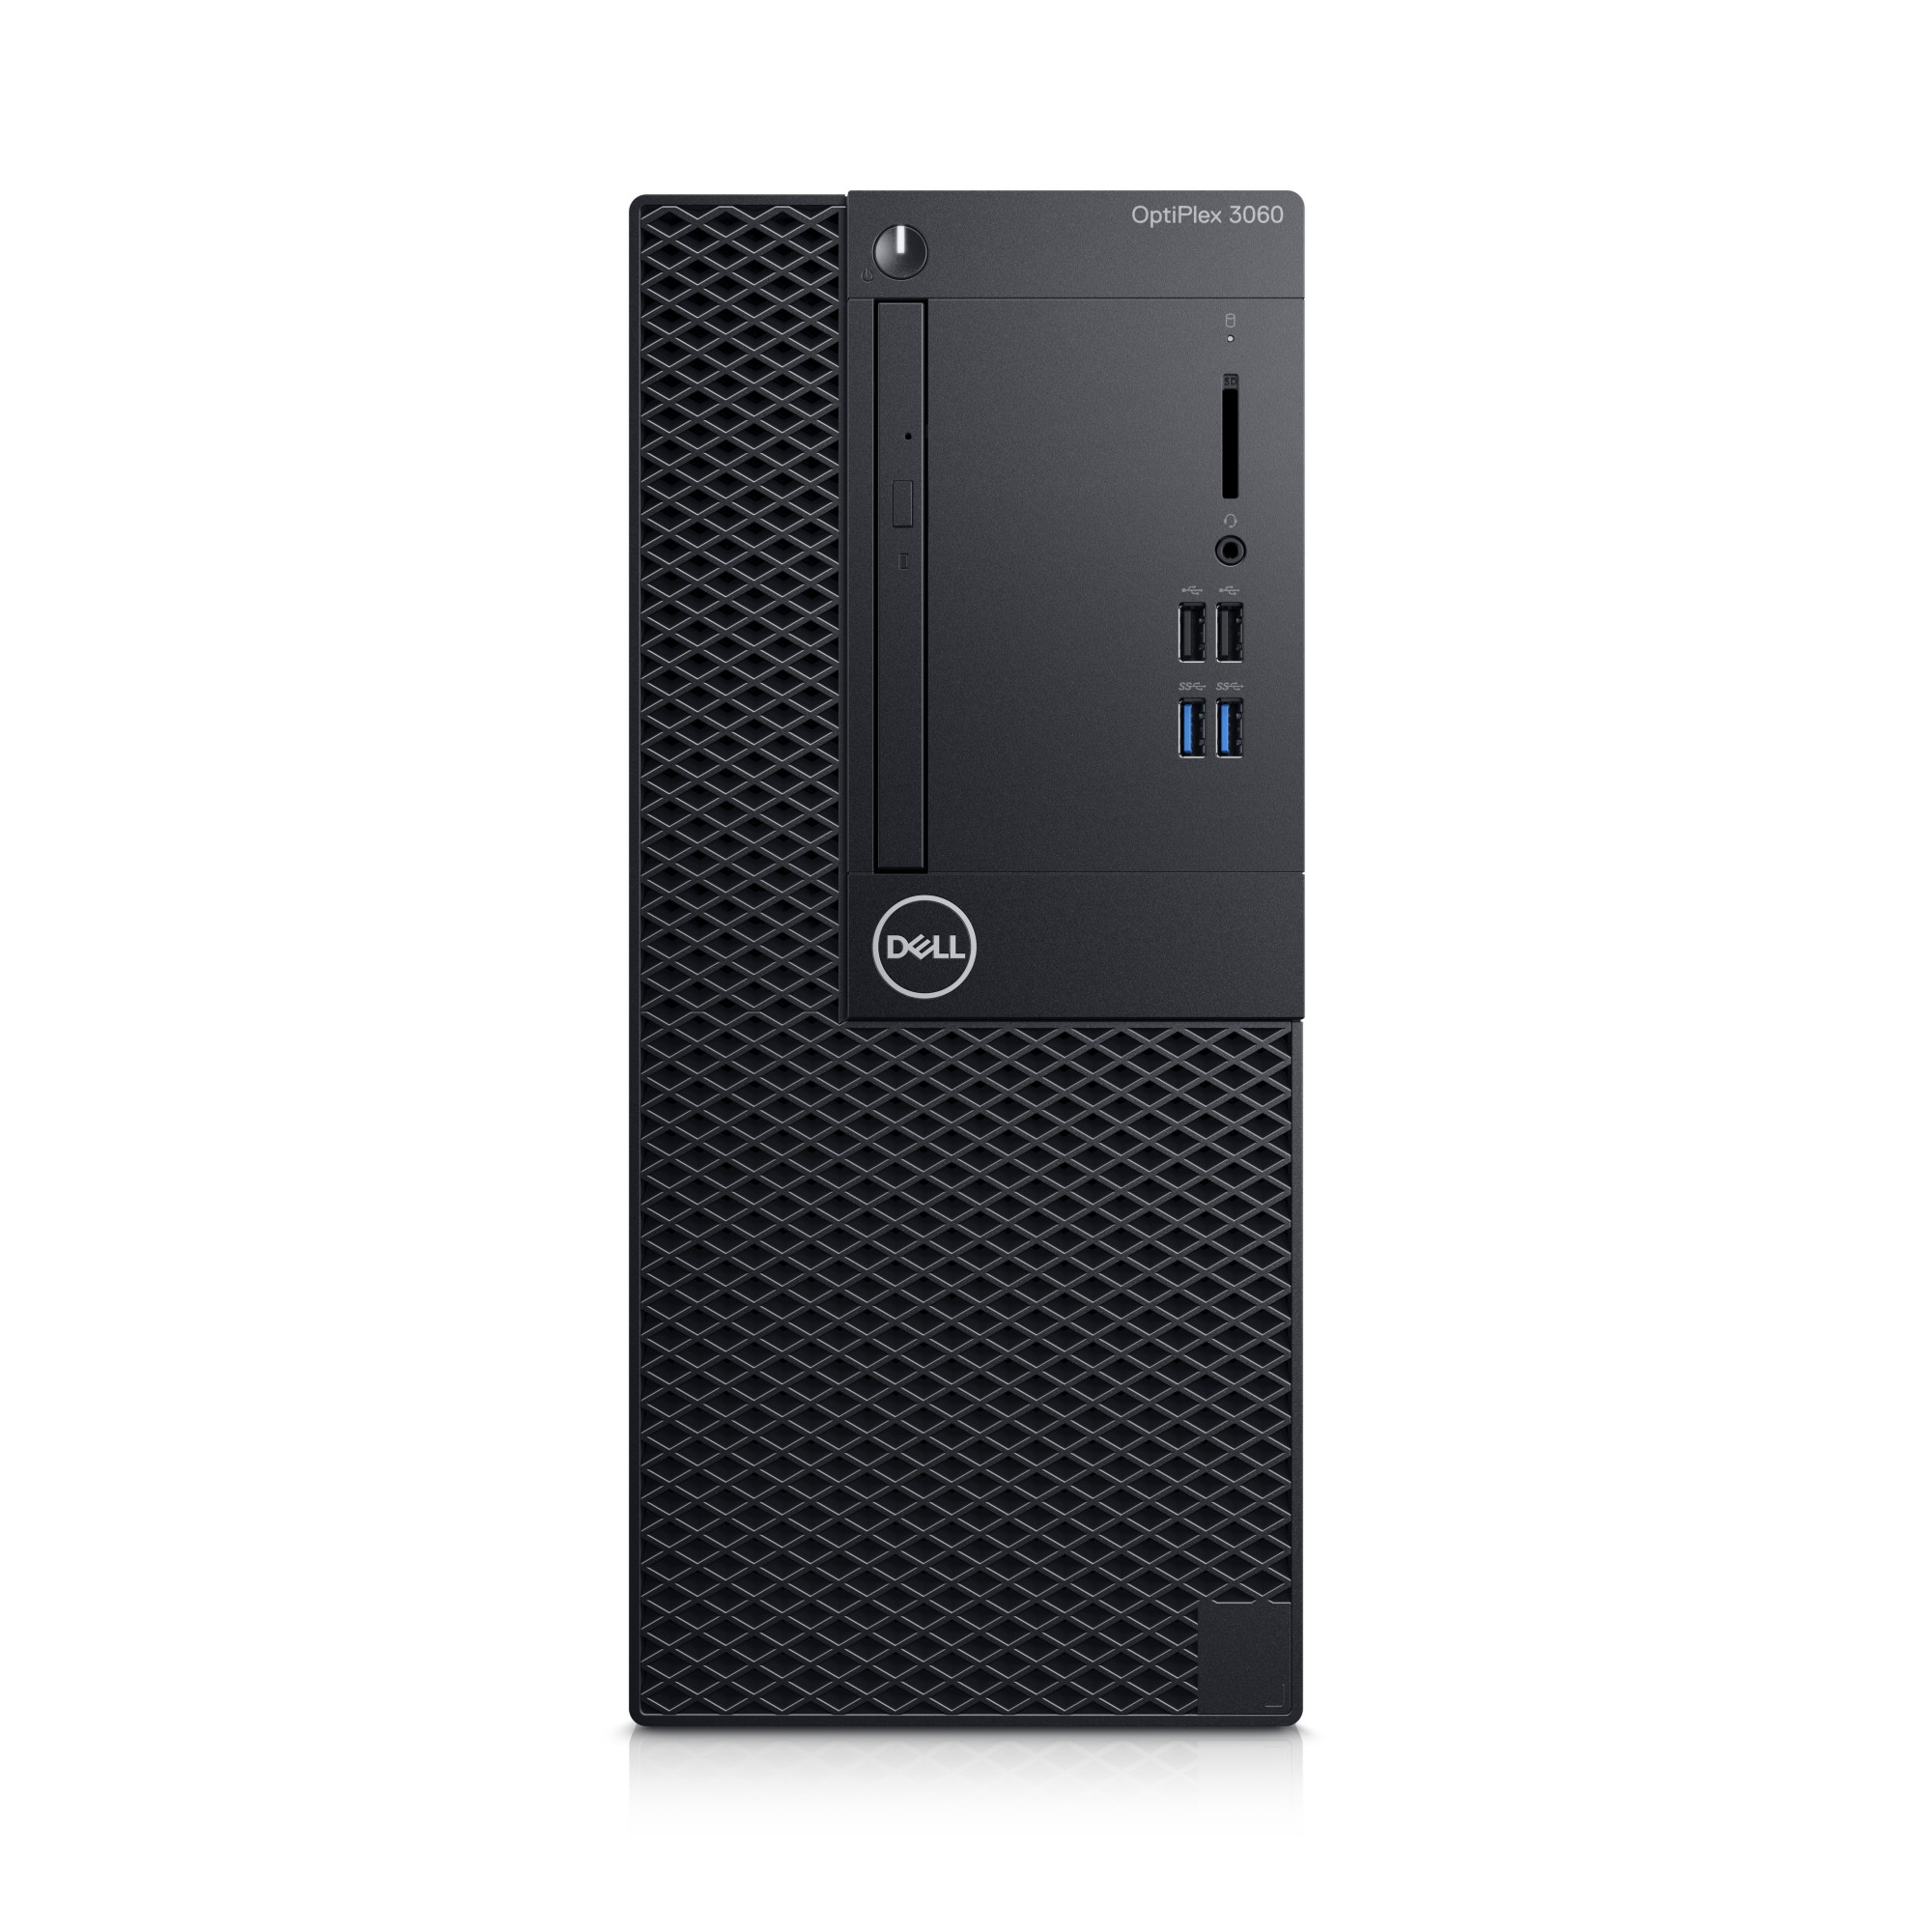 DELL OPTIPLEX 3060 3.6GHZ I3-8100 MIDI TOWER BLACK PC